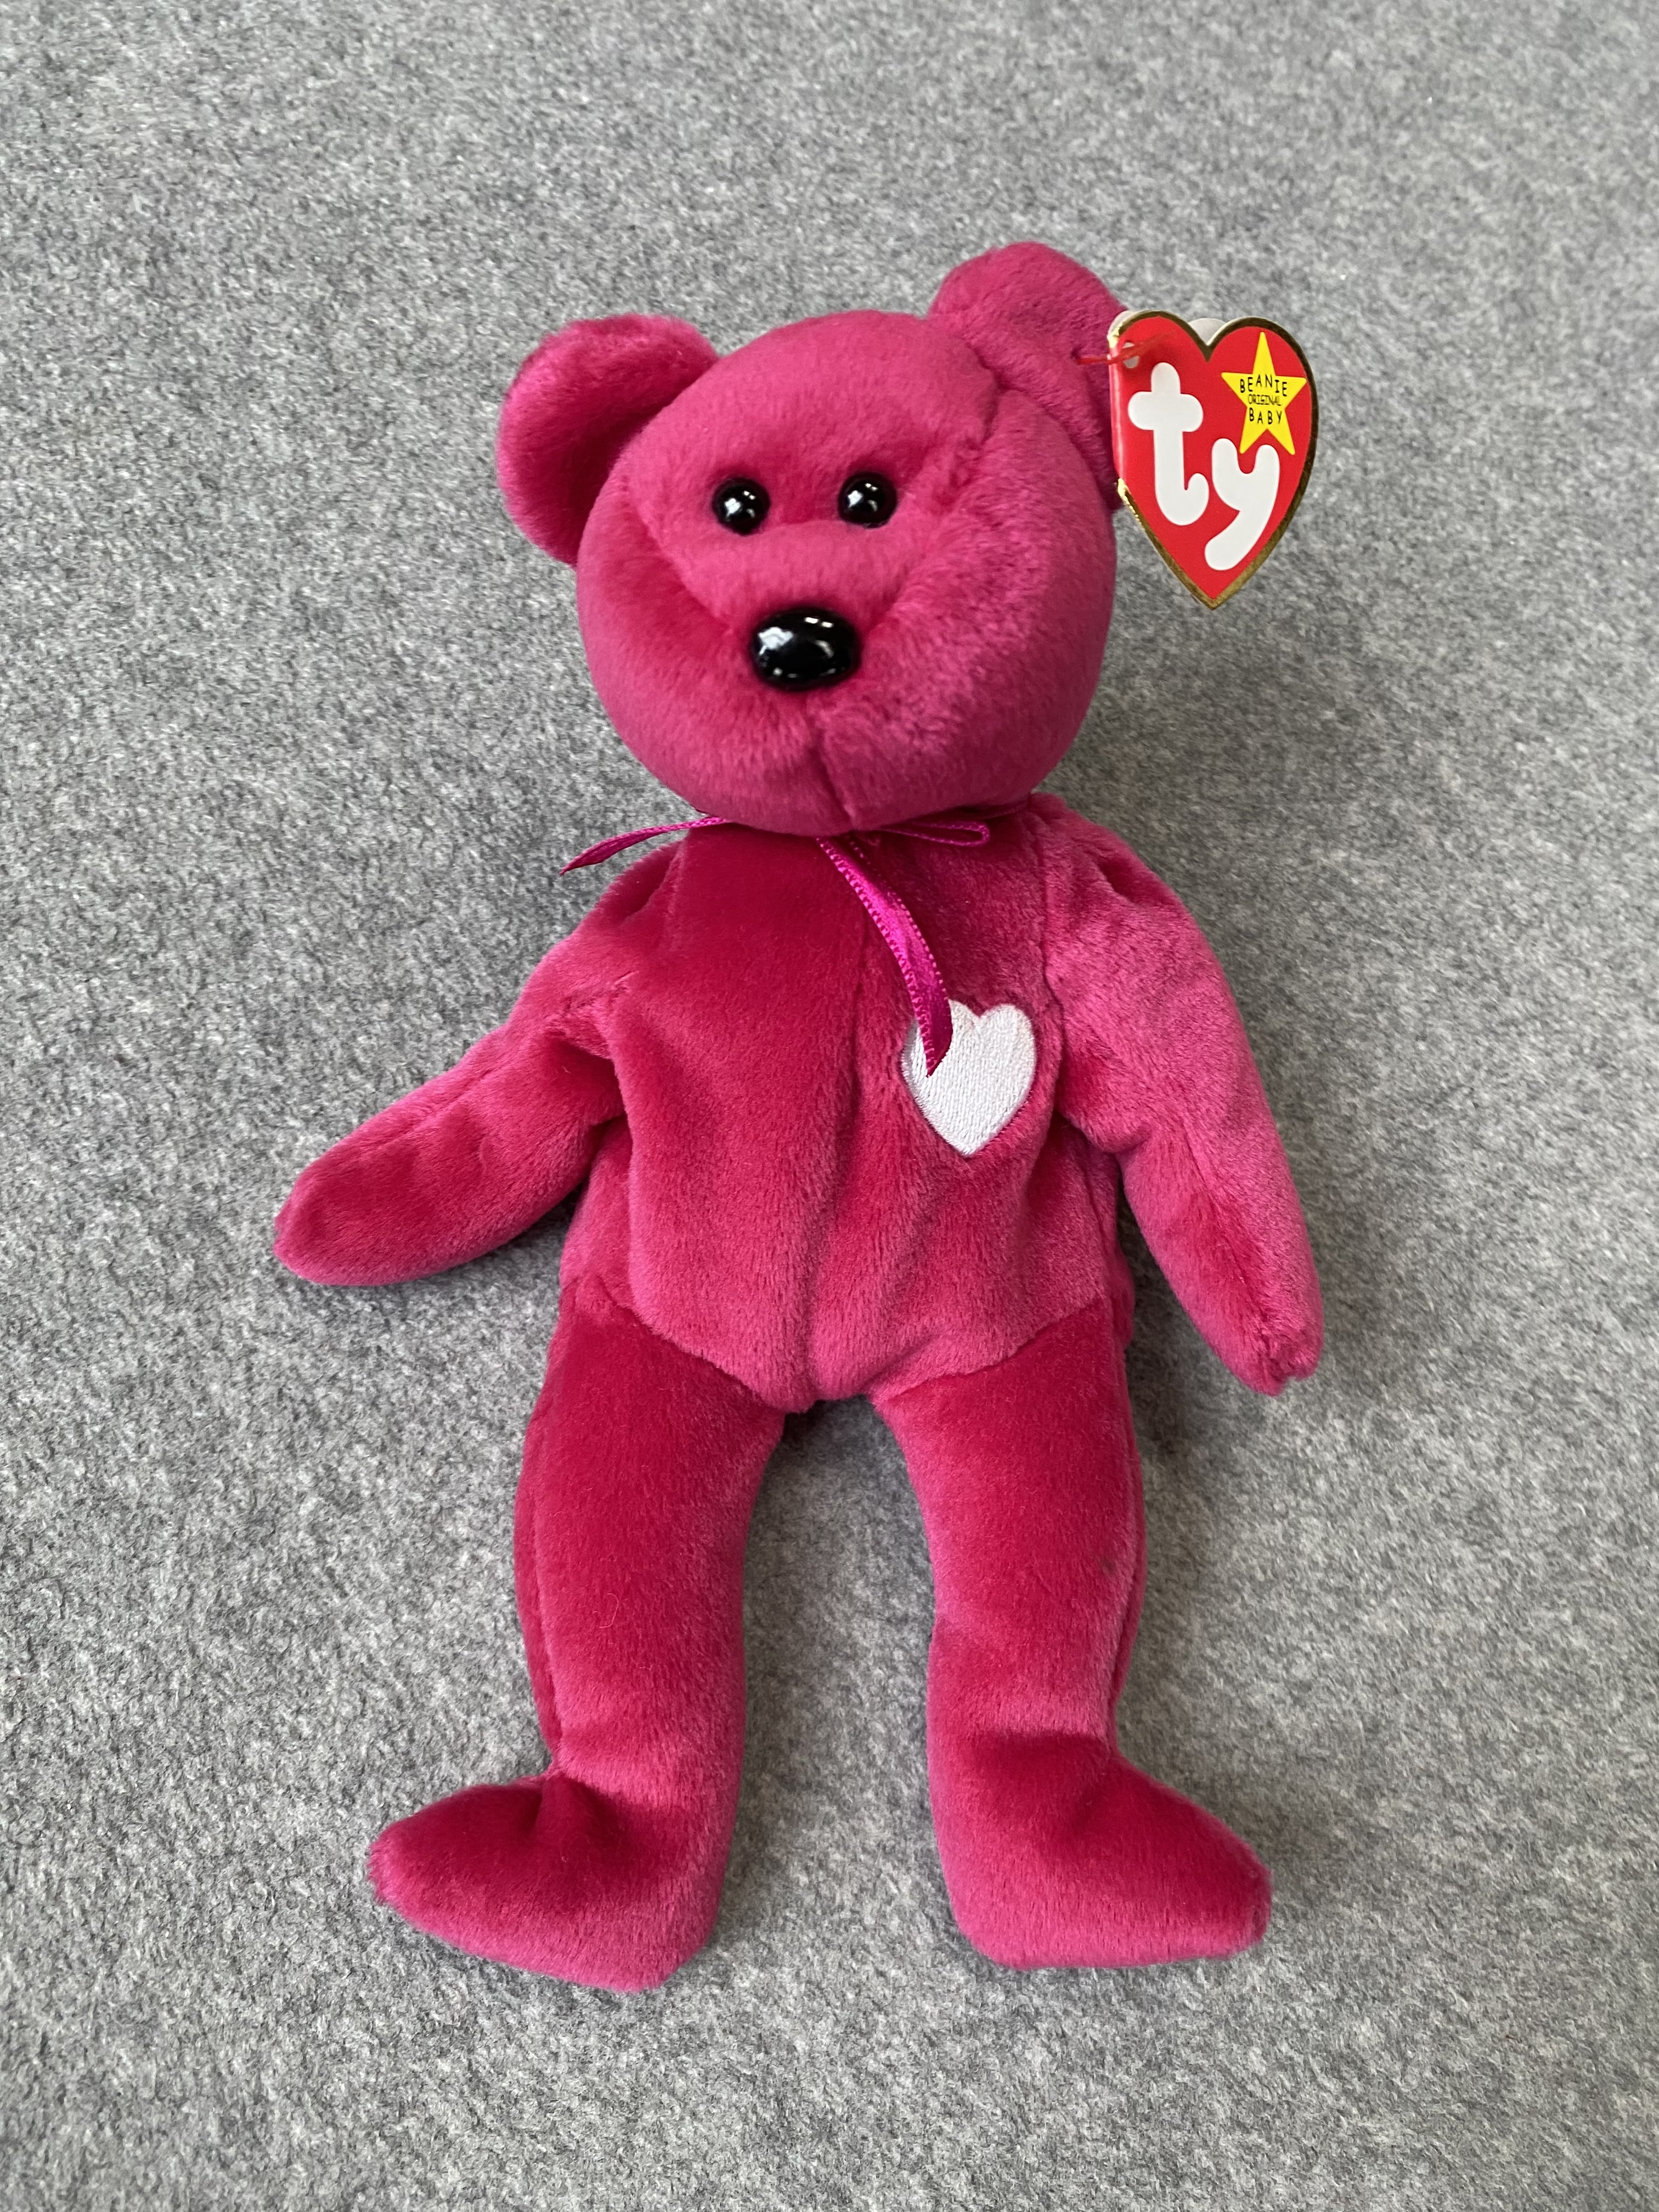 Pink Bear Beanie Baby with White Heart